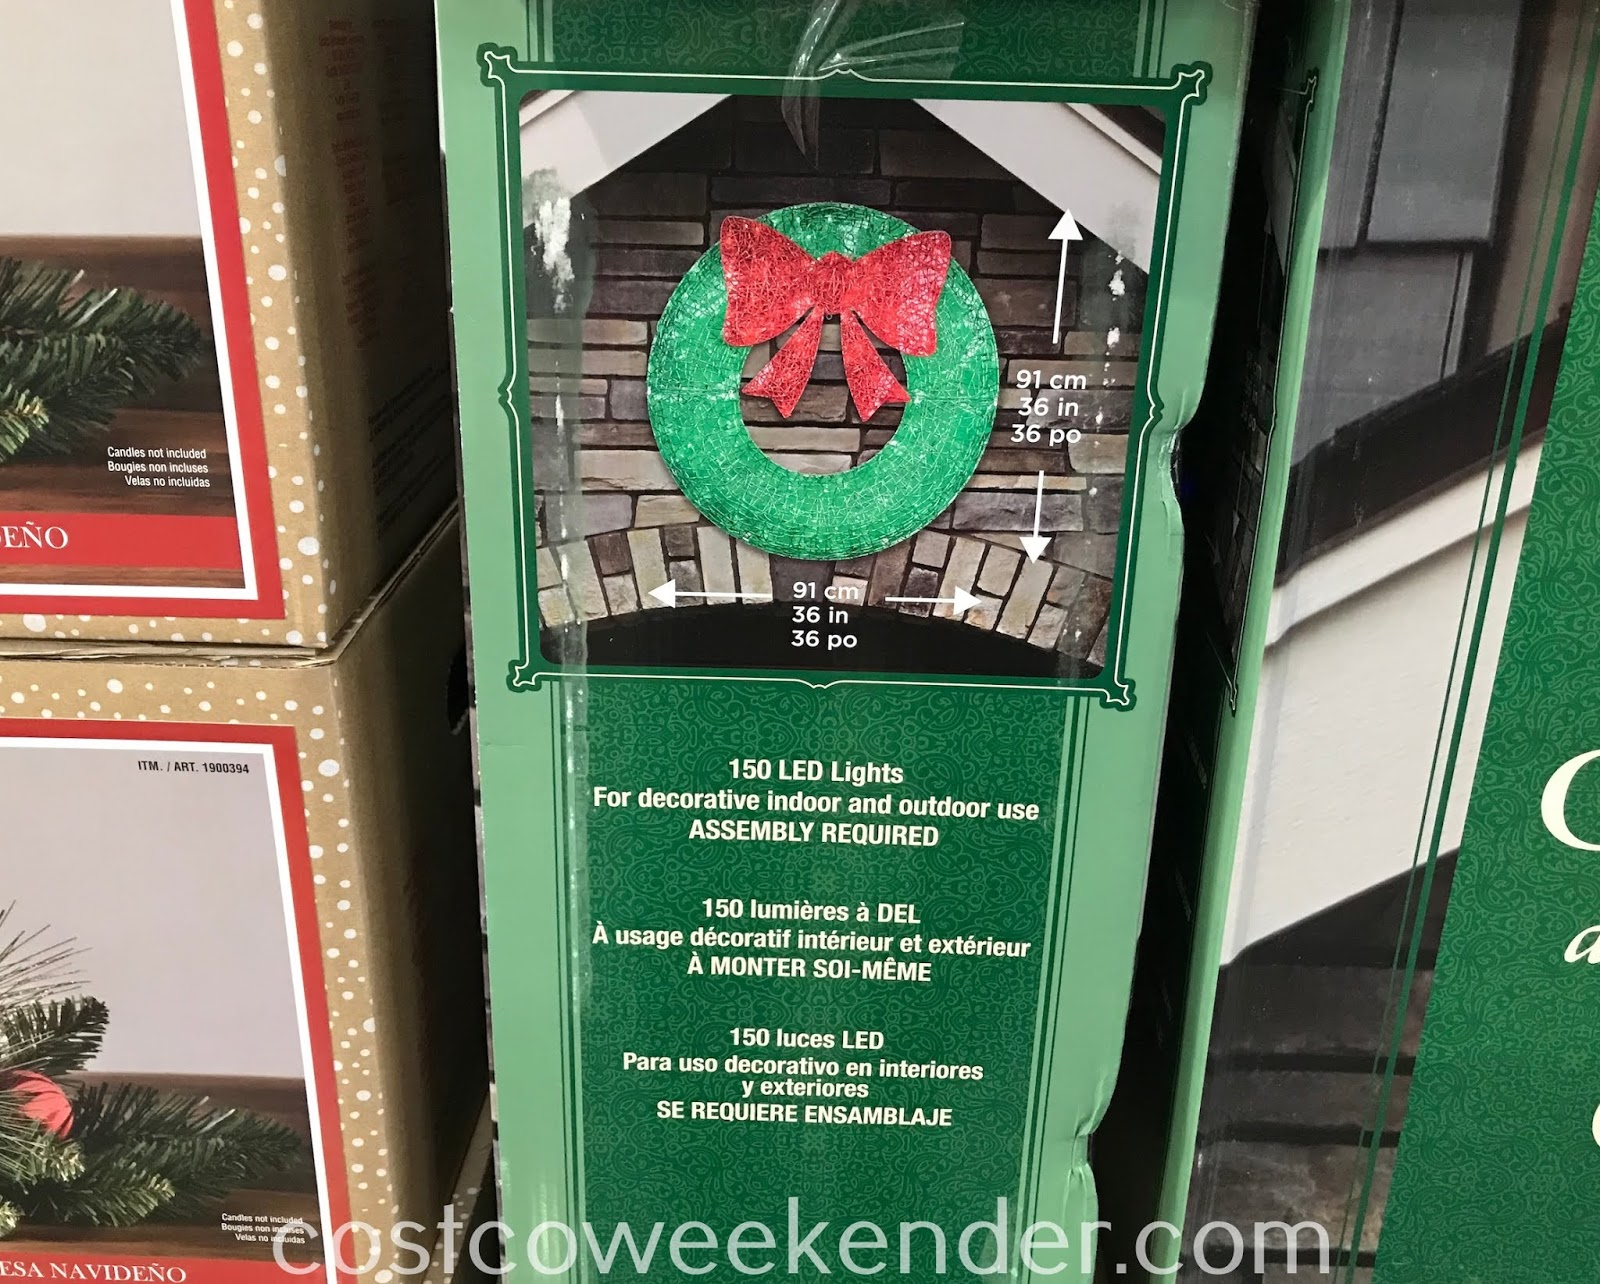 Costco 2002055 - LED Wreath: great for the holidays